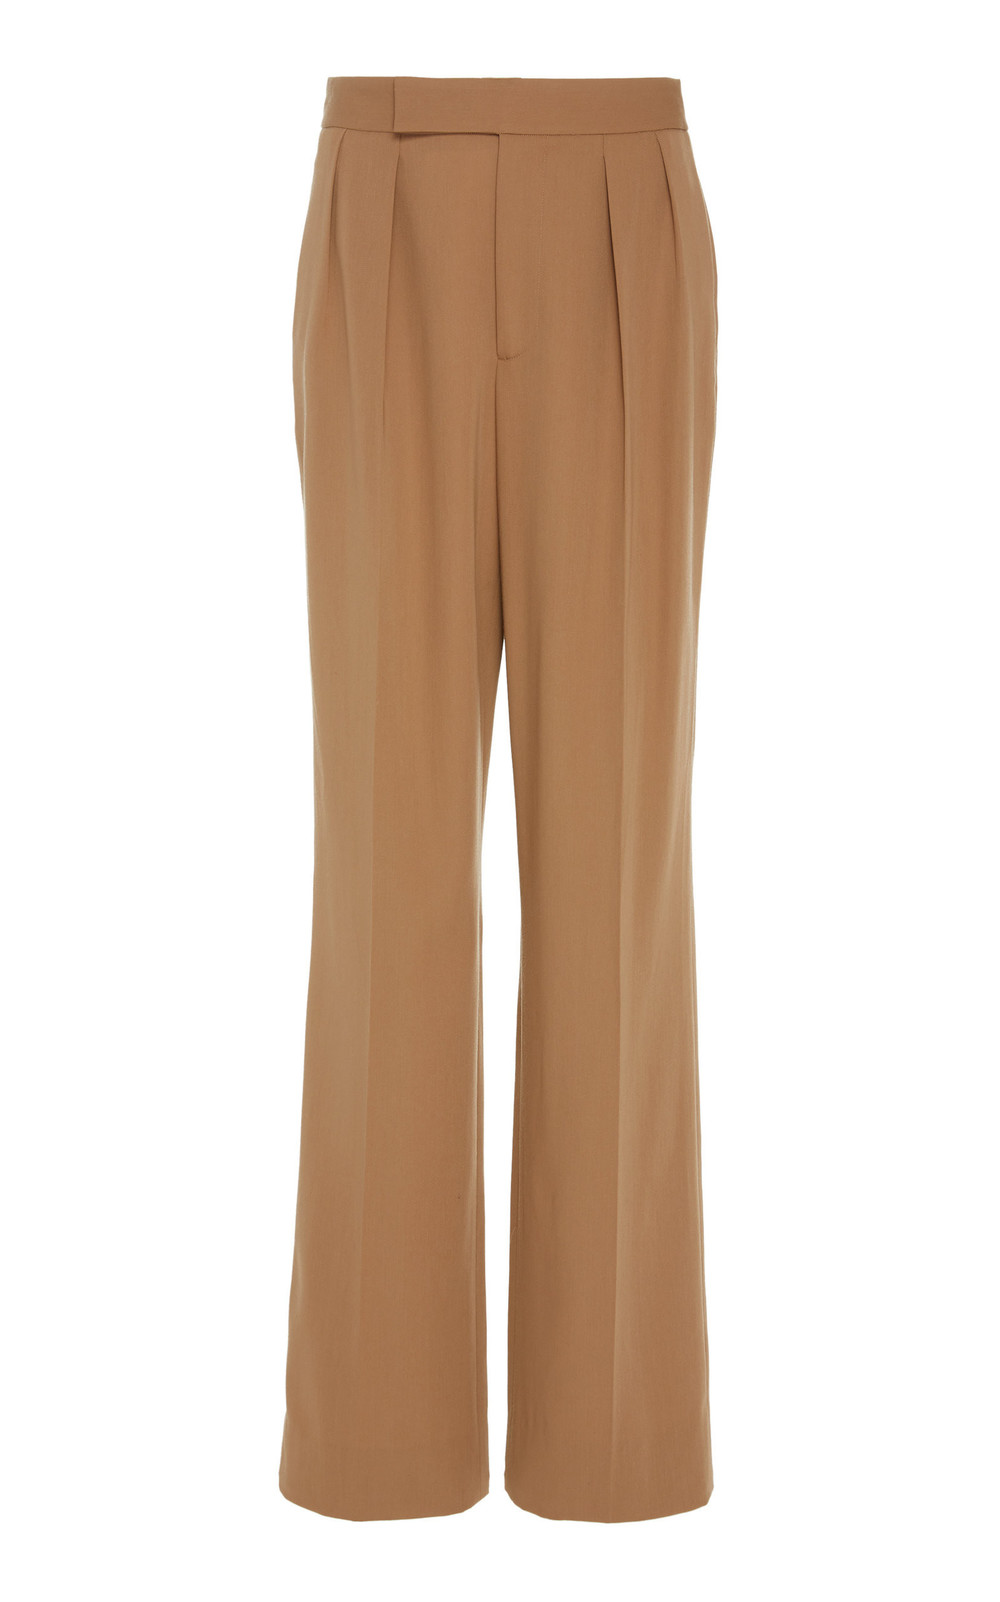 Ralph Lauren Bingham Pleated Wool-Crepe Wide-Leg Pants in brown